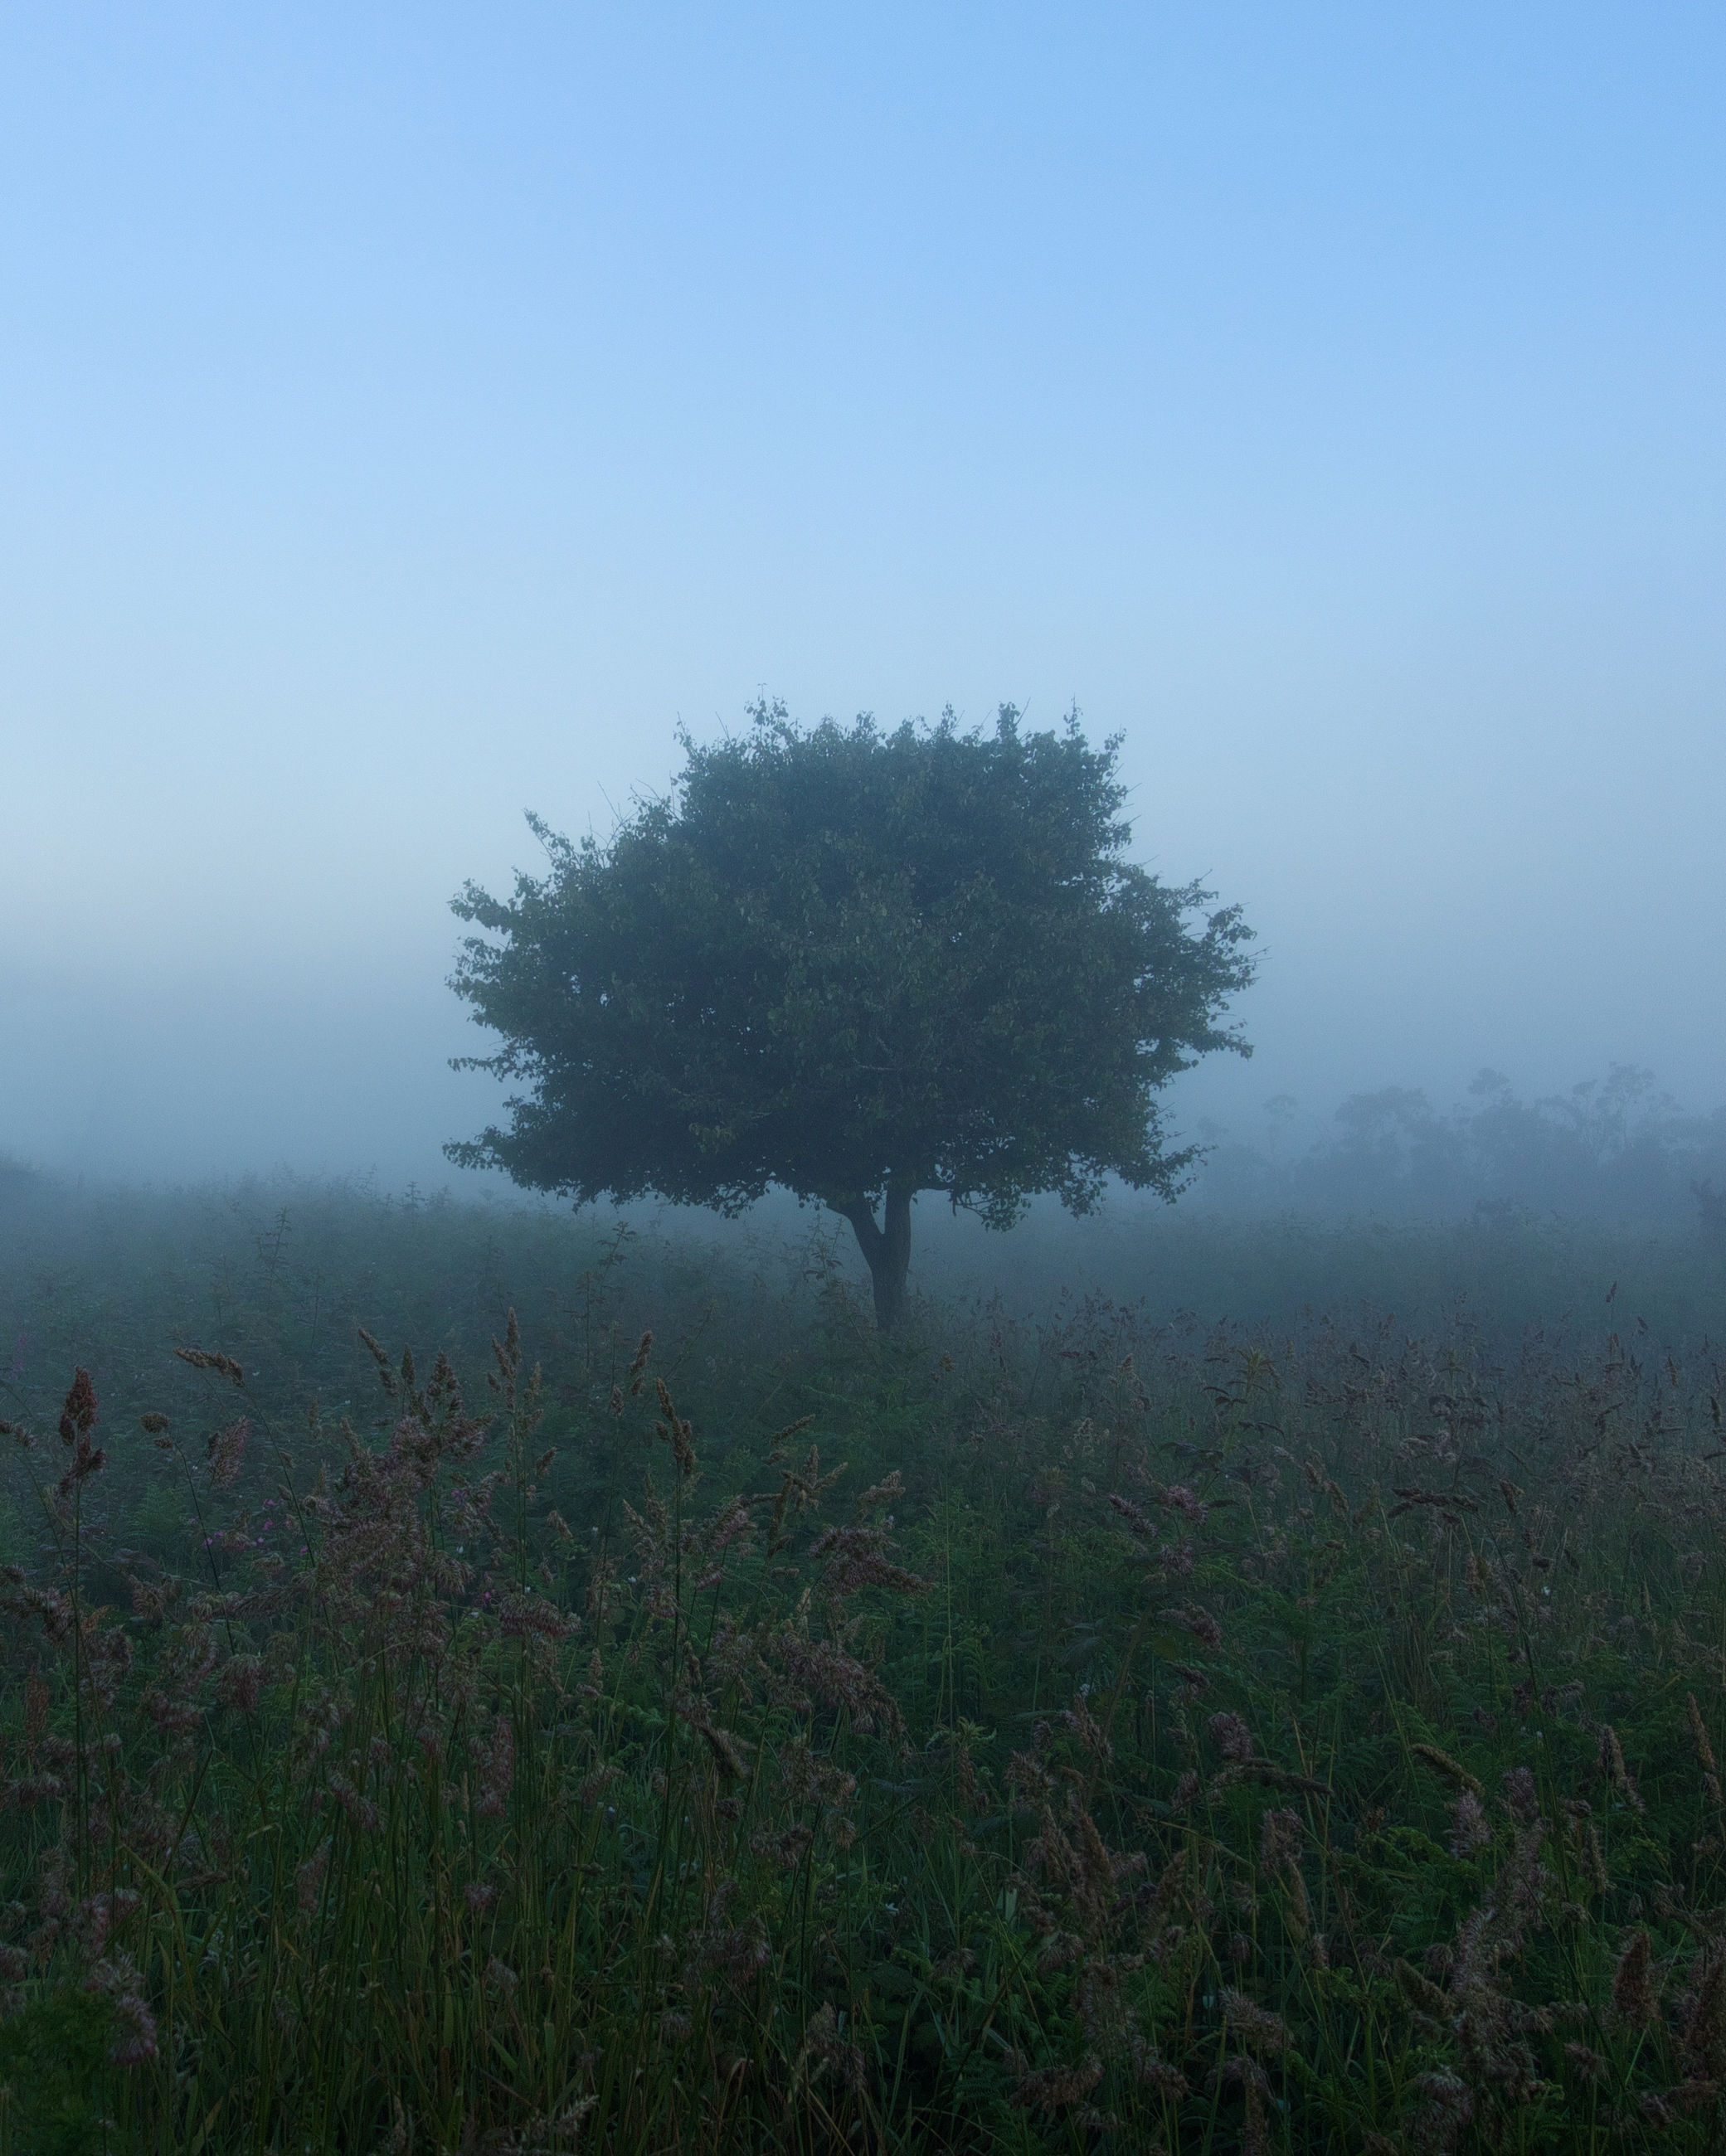 plant, fog, tree, beauty in nature, tranquility, land, growth, field, tranquil scene, sky, nature, environment, landscape, no people, scenics - nature, non-urban scene, grass, day, outdoors, hazy, isolated